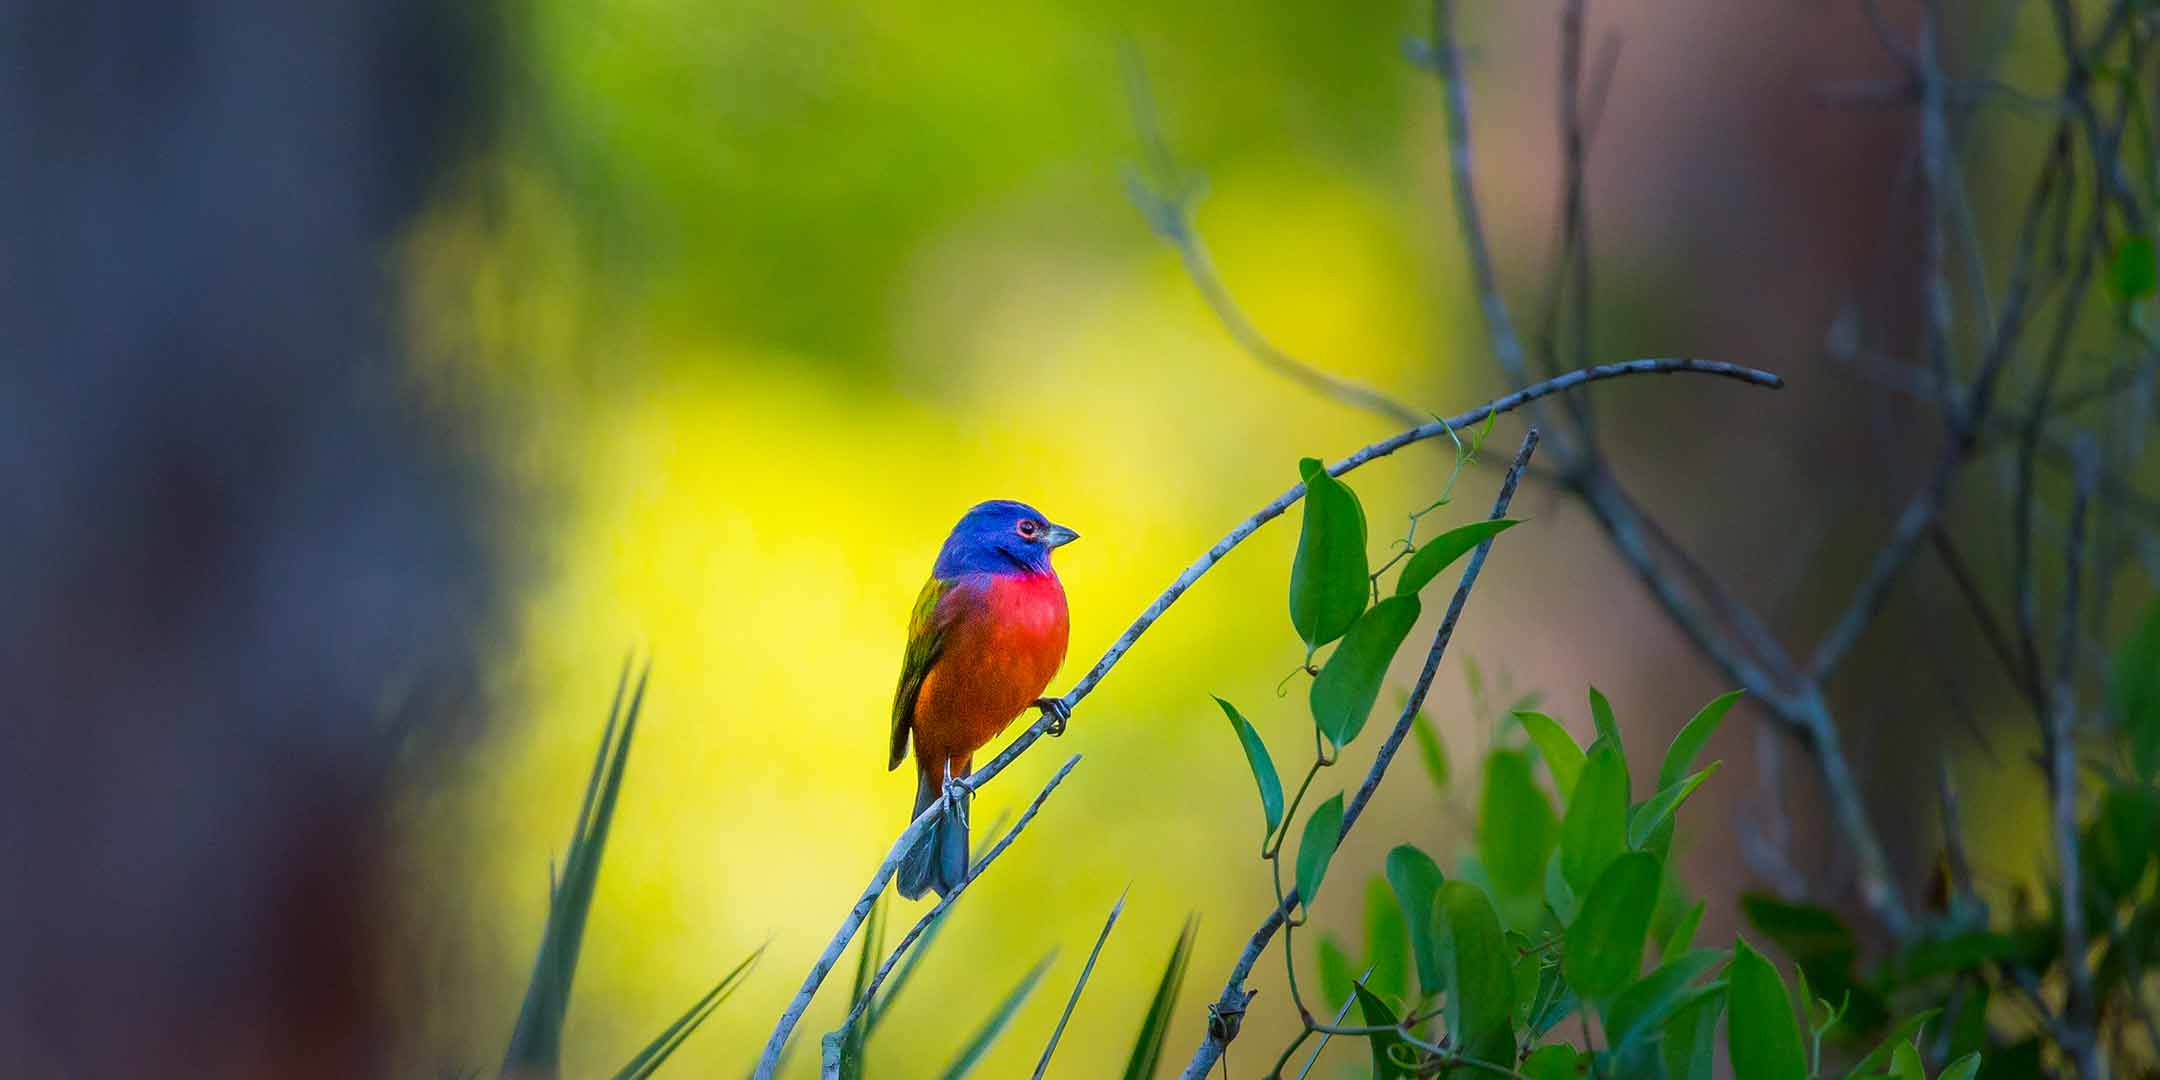 PaintedBunting-Image-Rectangle-2160x1080